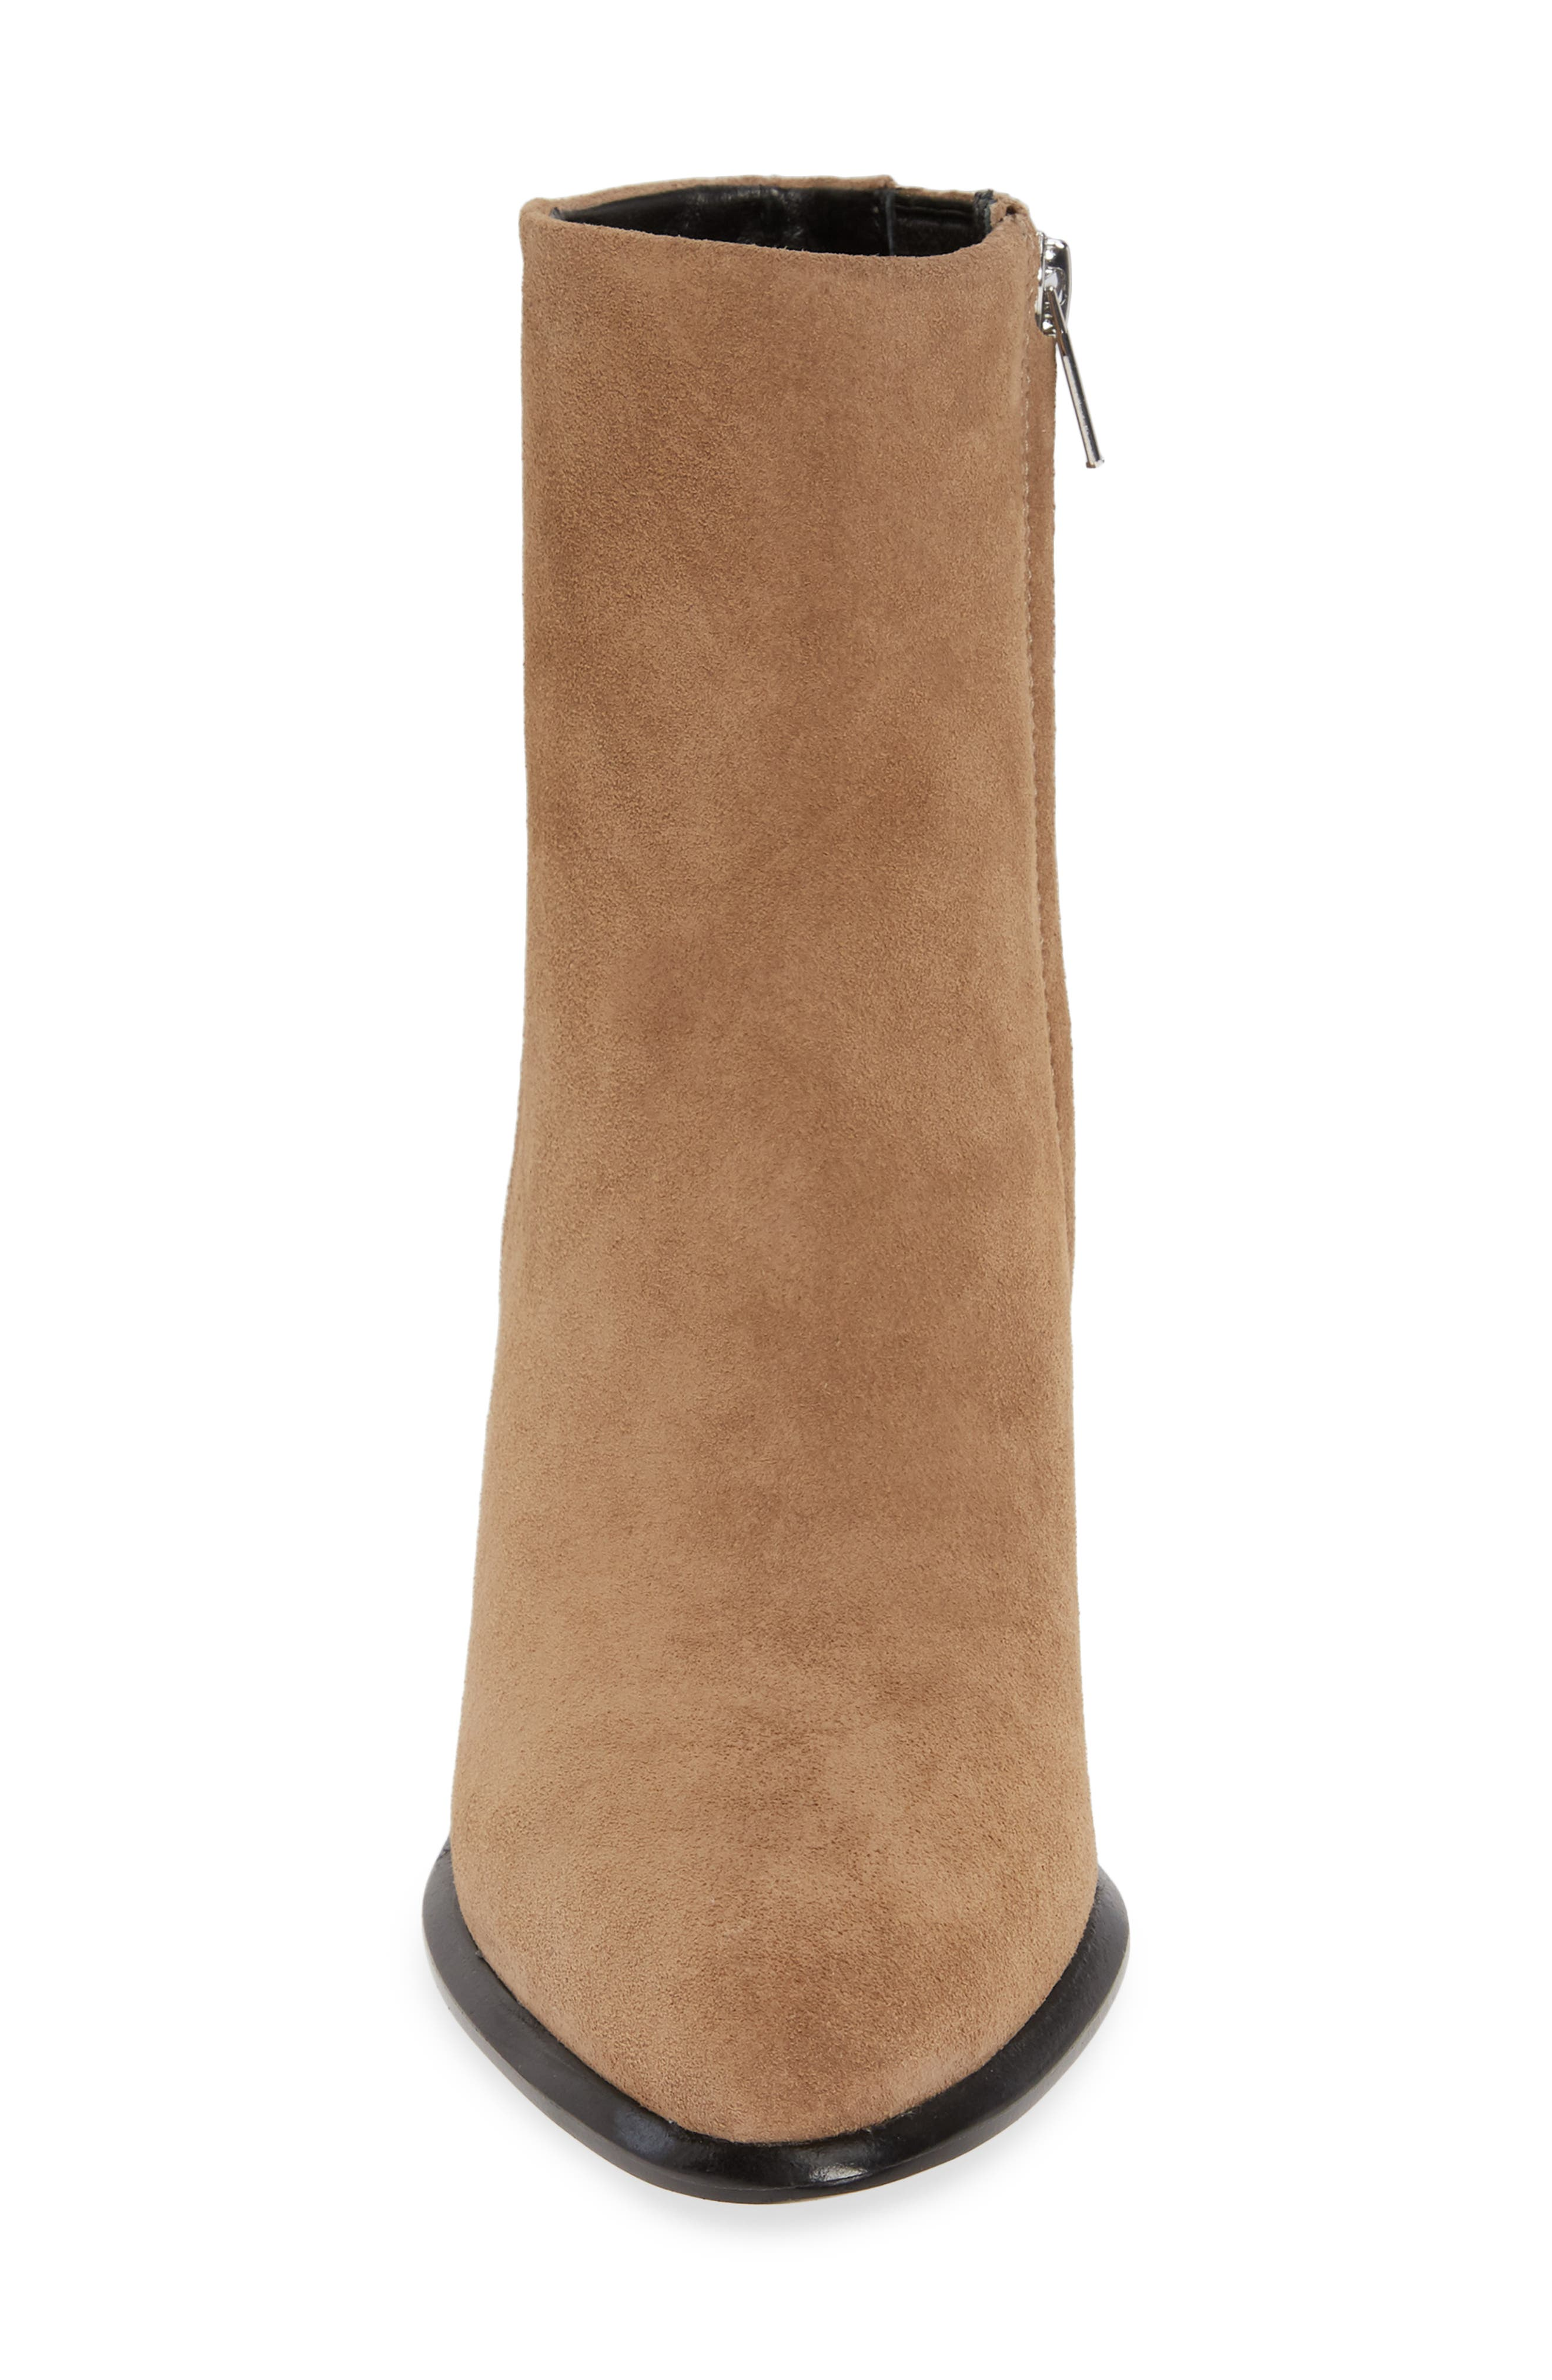 ALEXANDER WANG, Anna Mid Bootie, Alternate thumbnail 4, color, SAND SUEDE